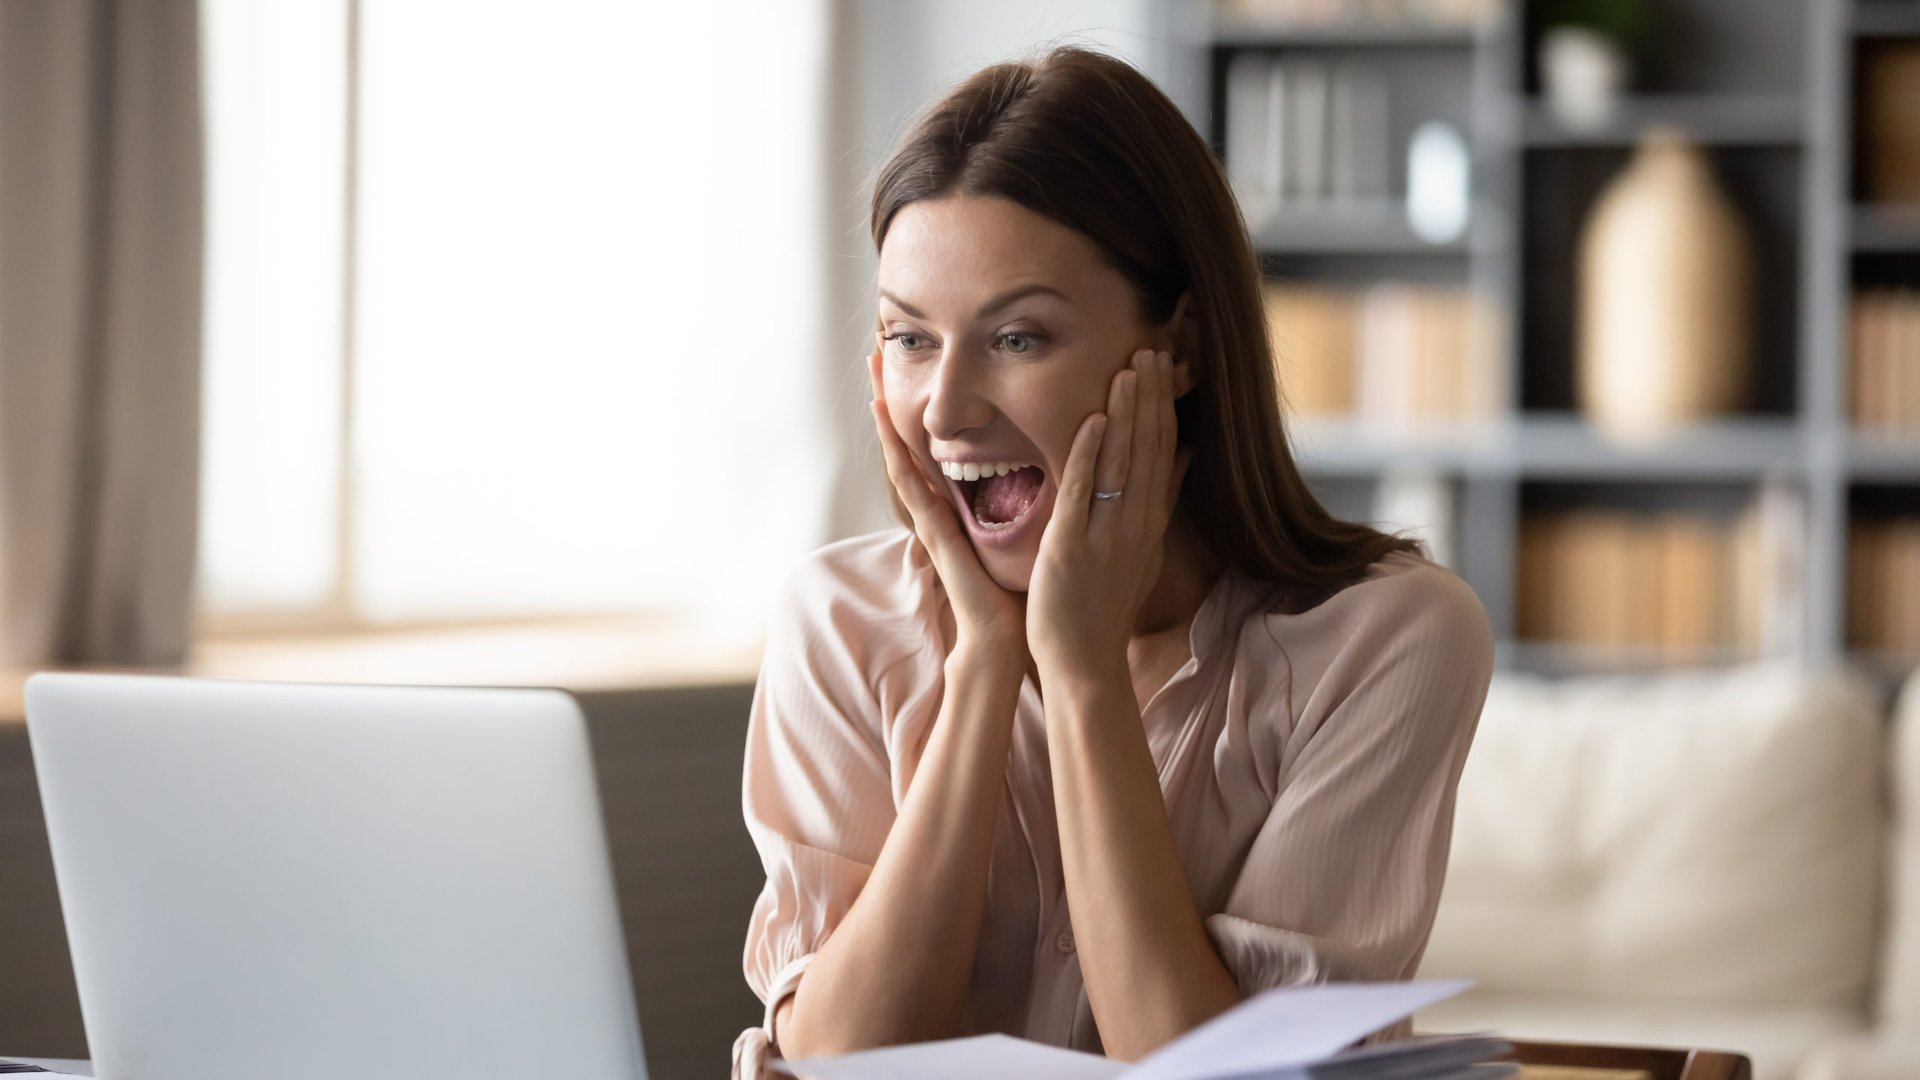 excited woman looking at laptop